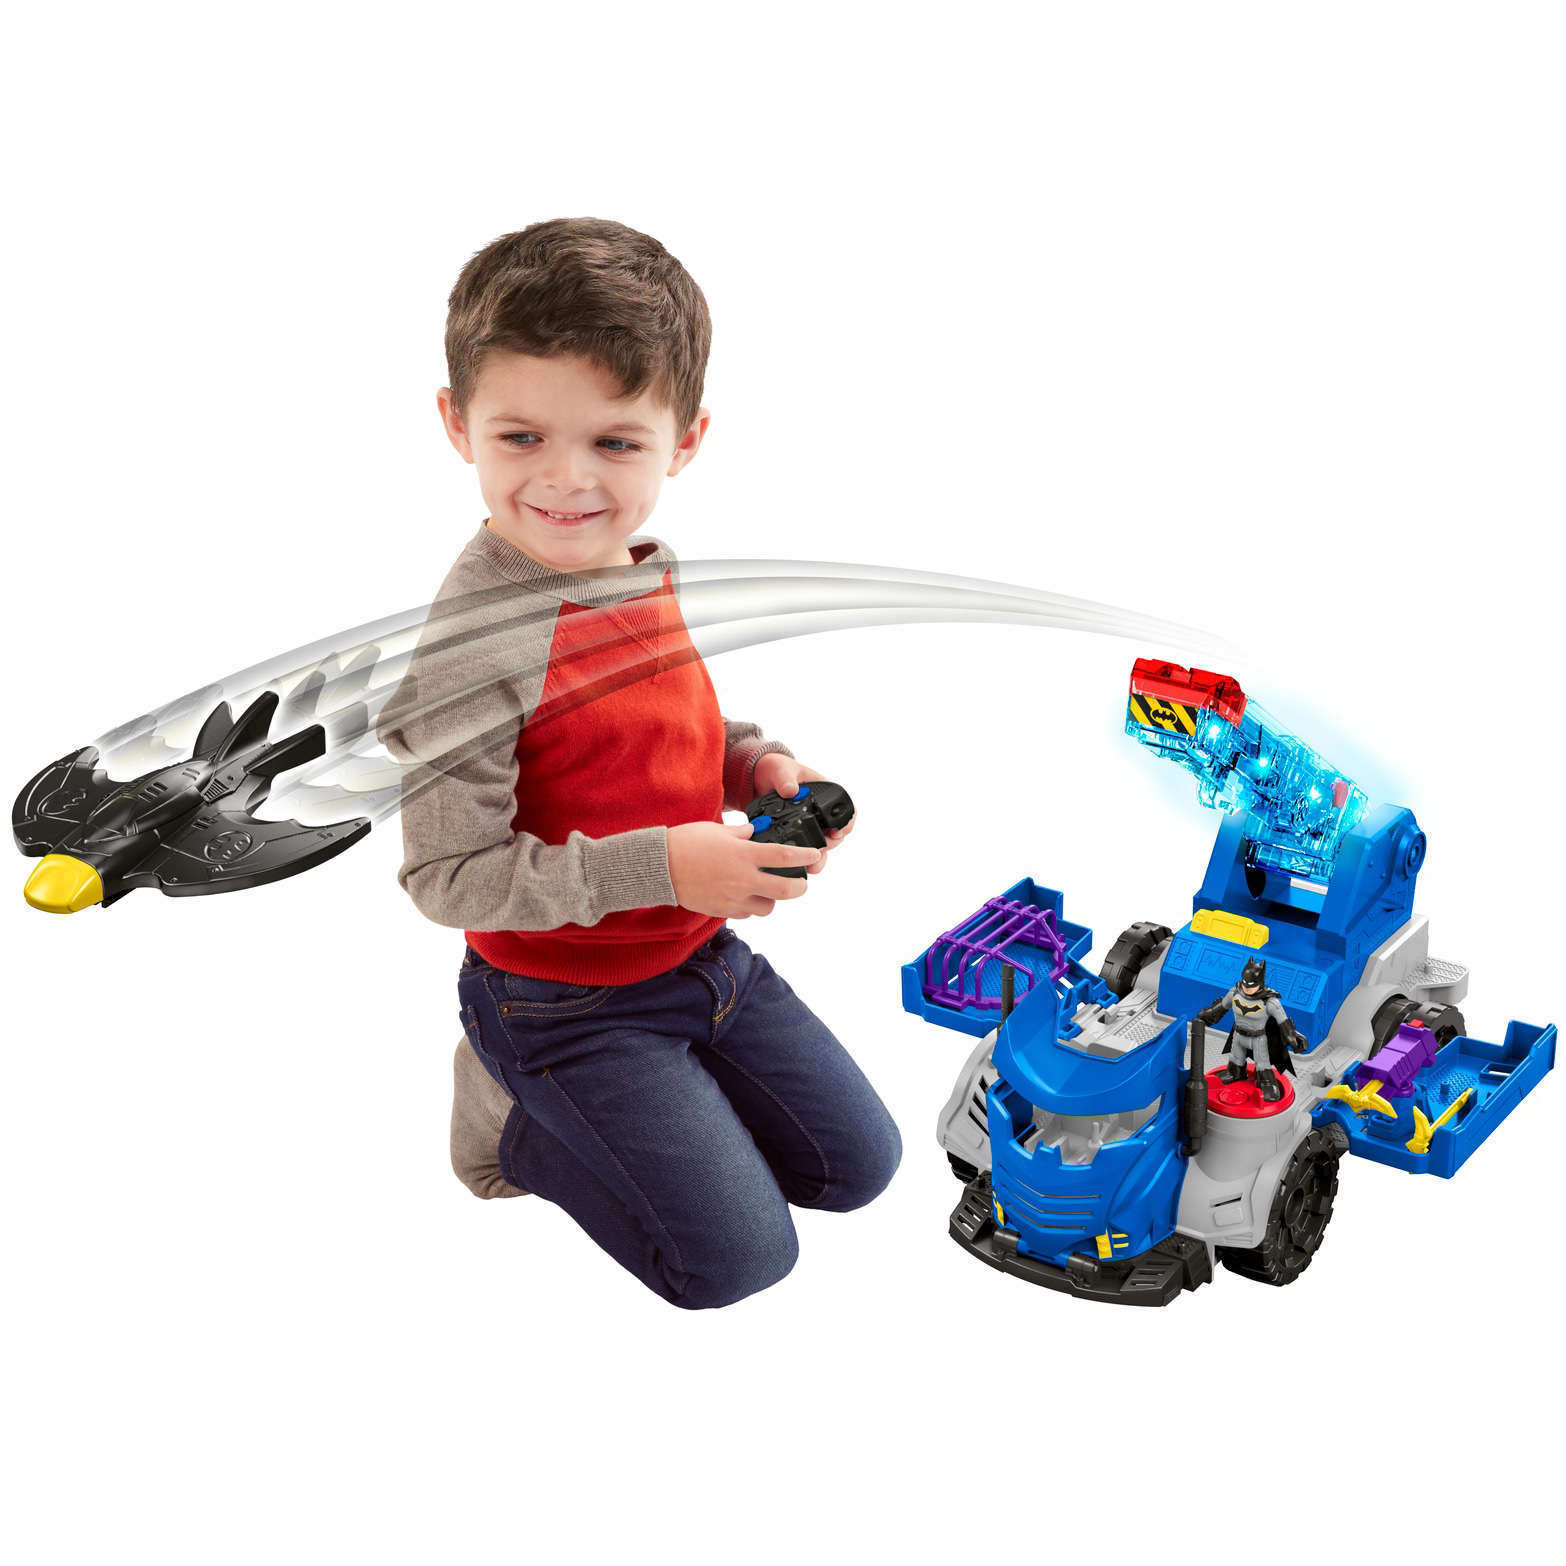 Imaginext DC Super Friends RC Mobile Command Center